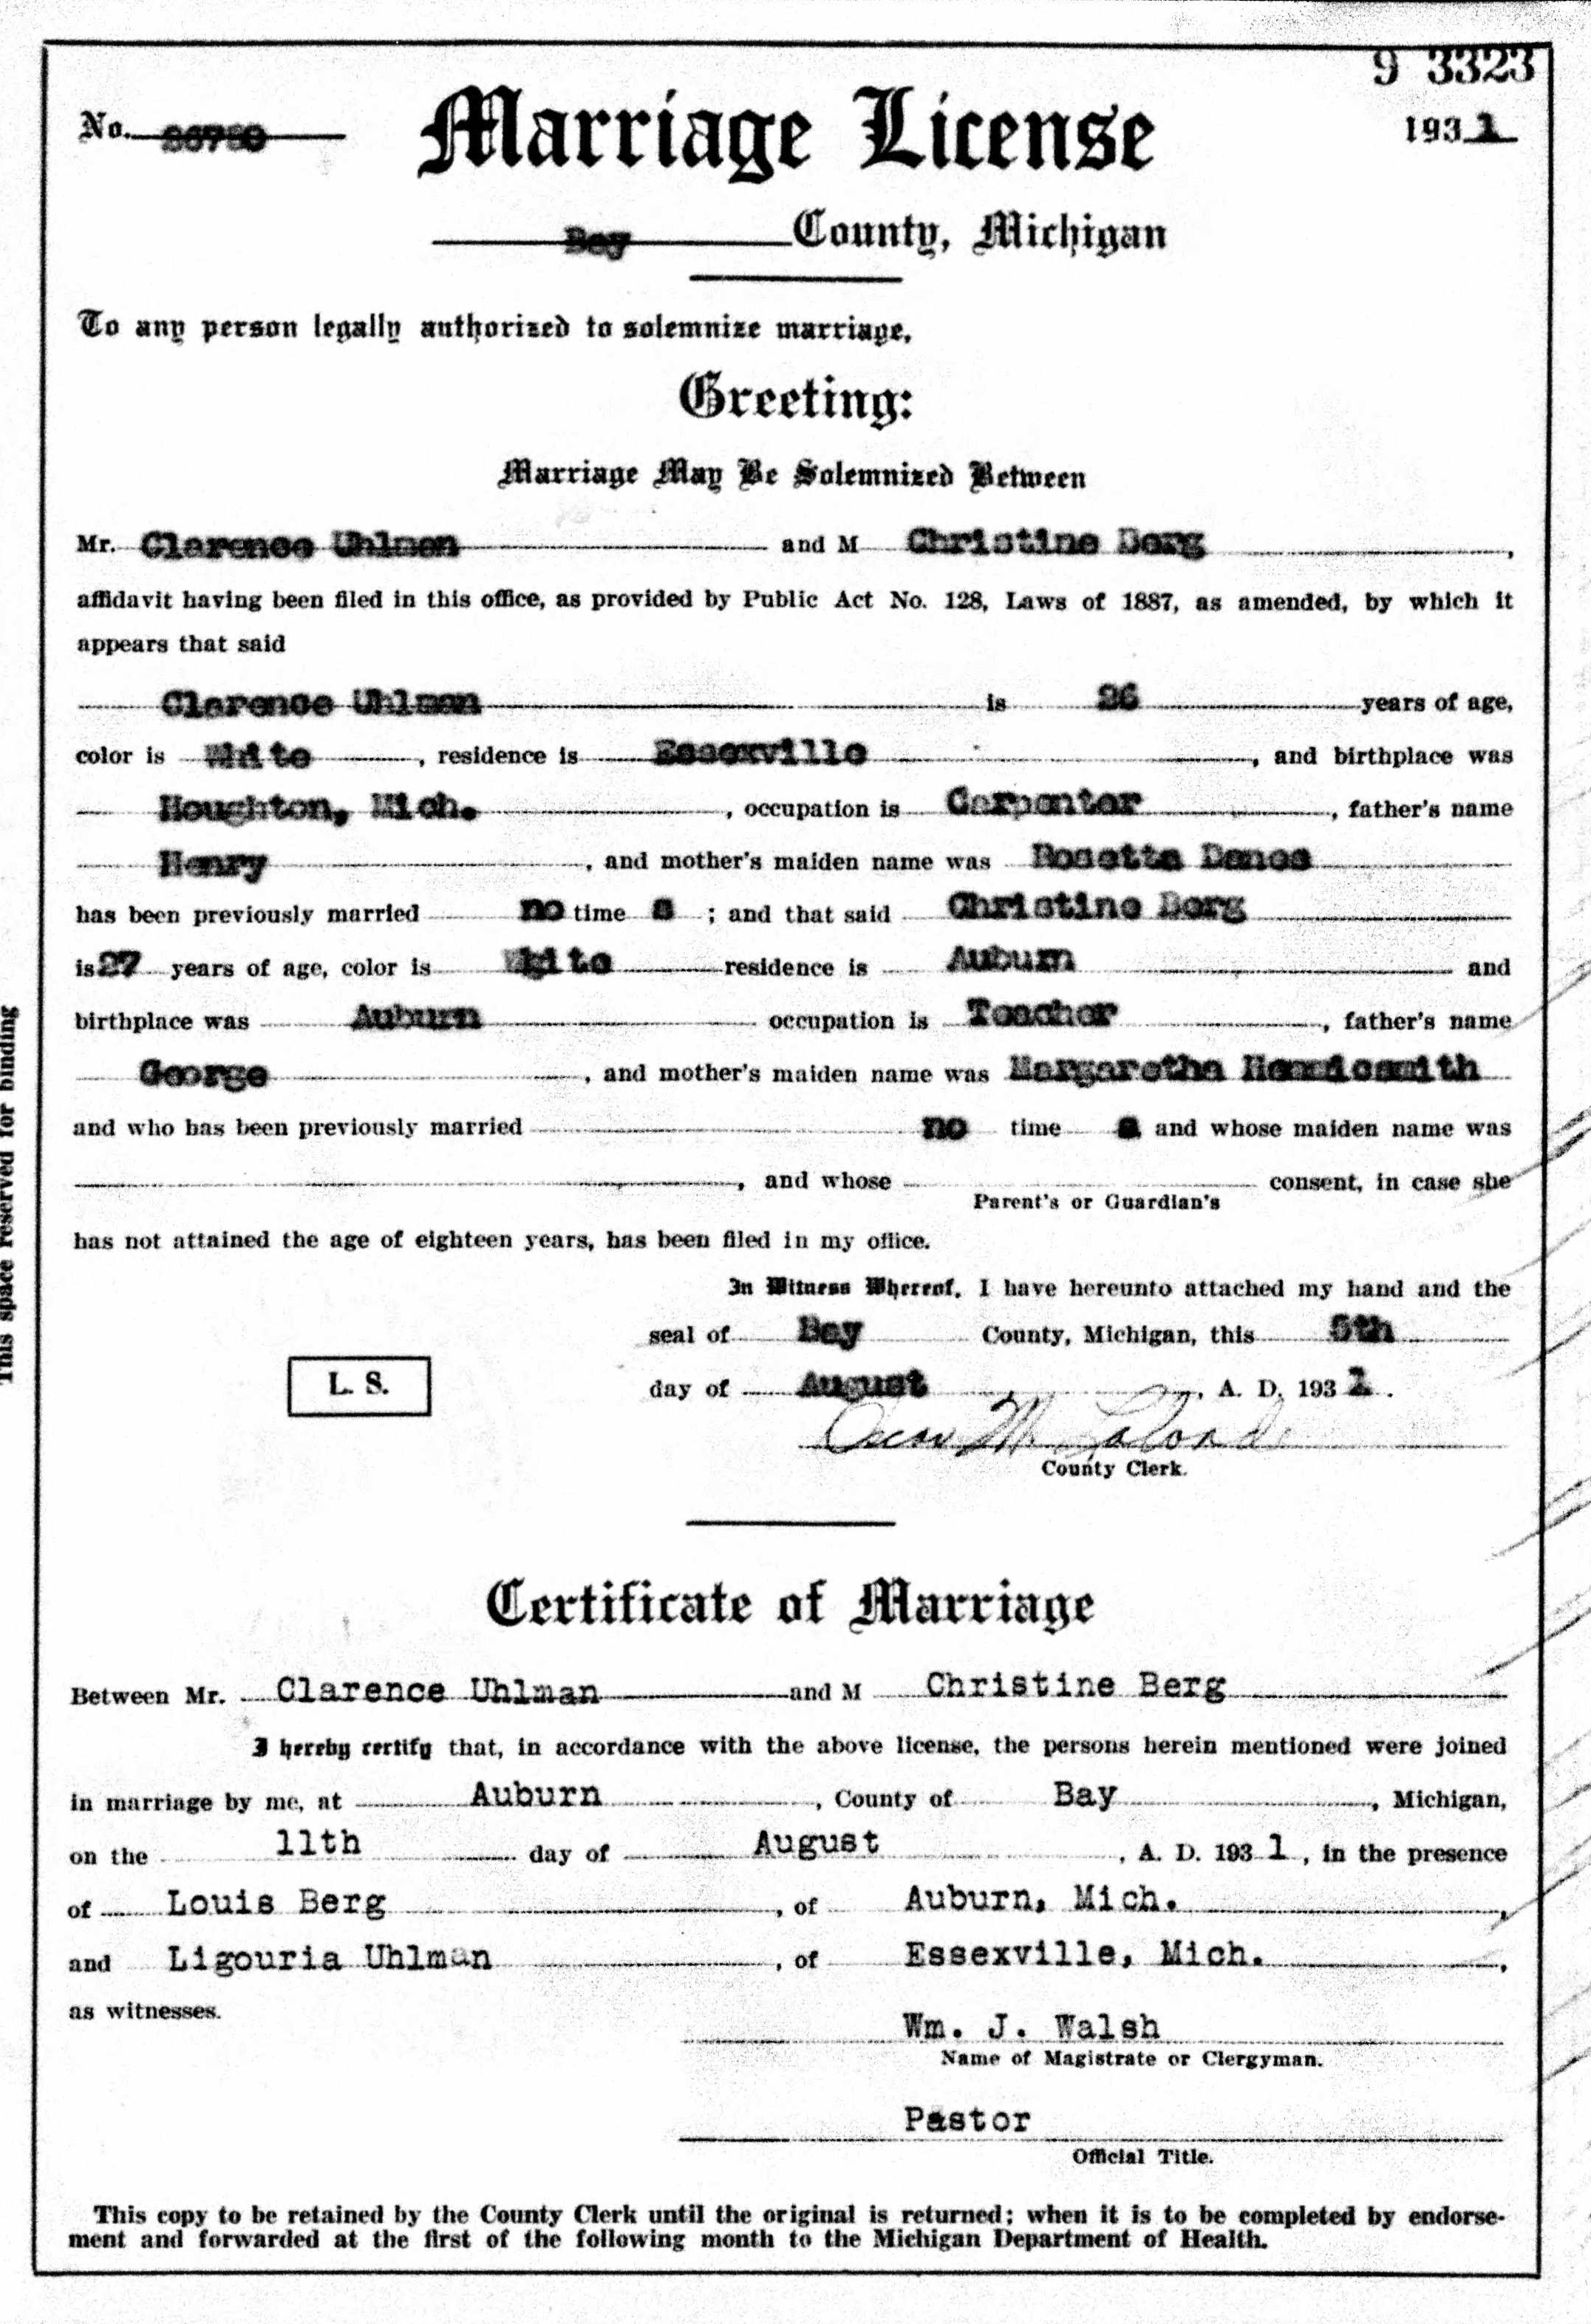 Marriage License for Clarence Uhlmann and Christine Mary Berg.